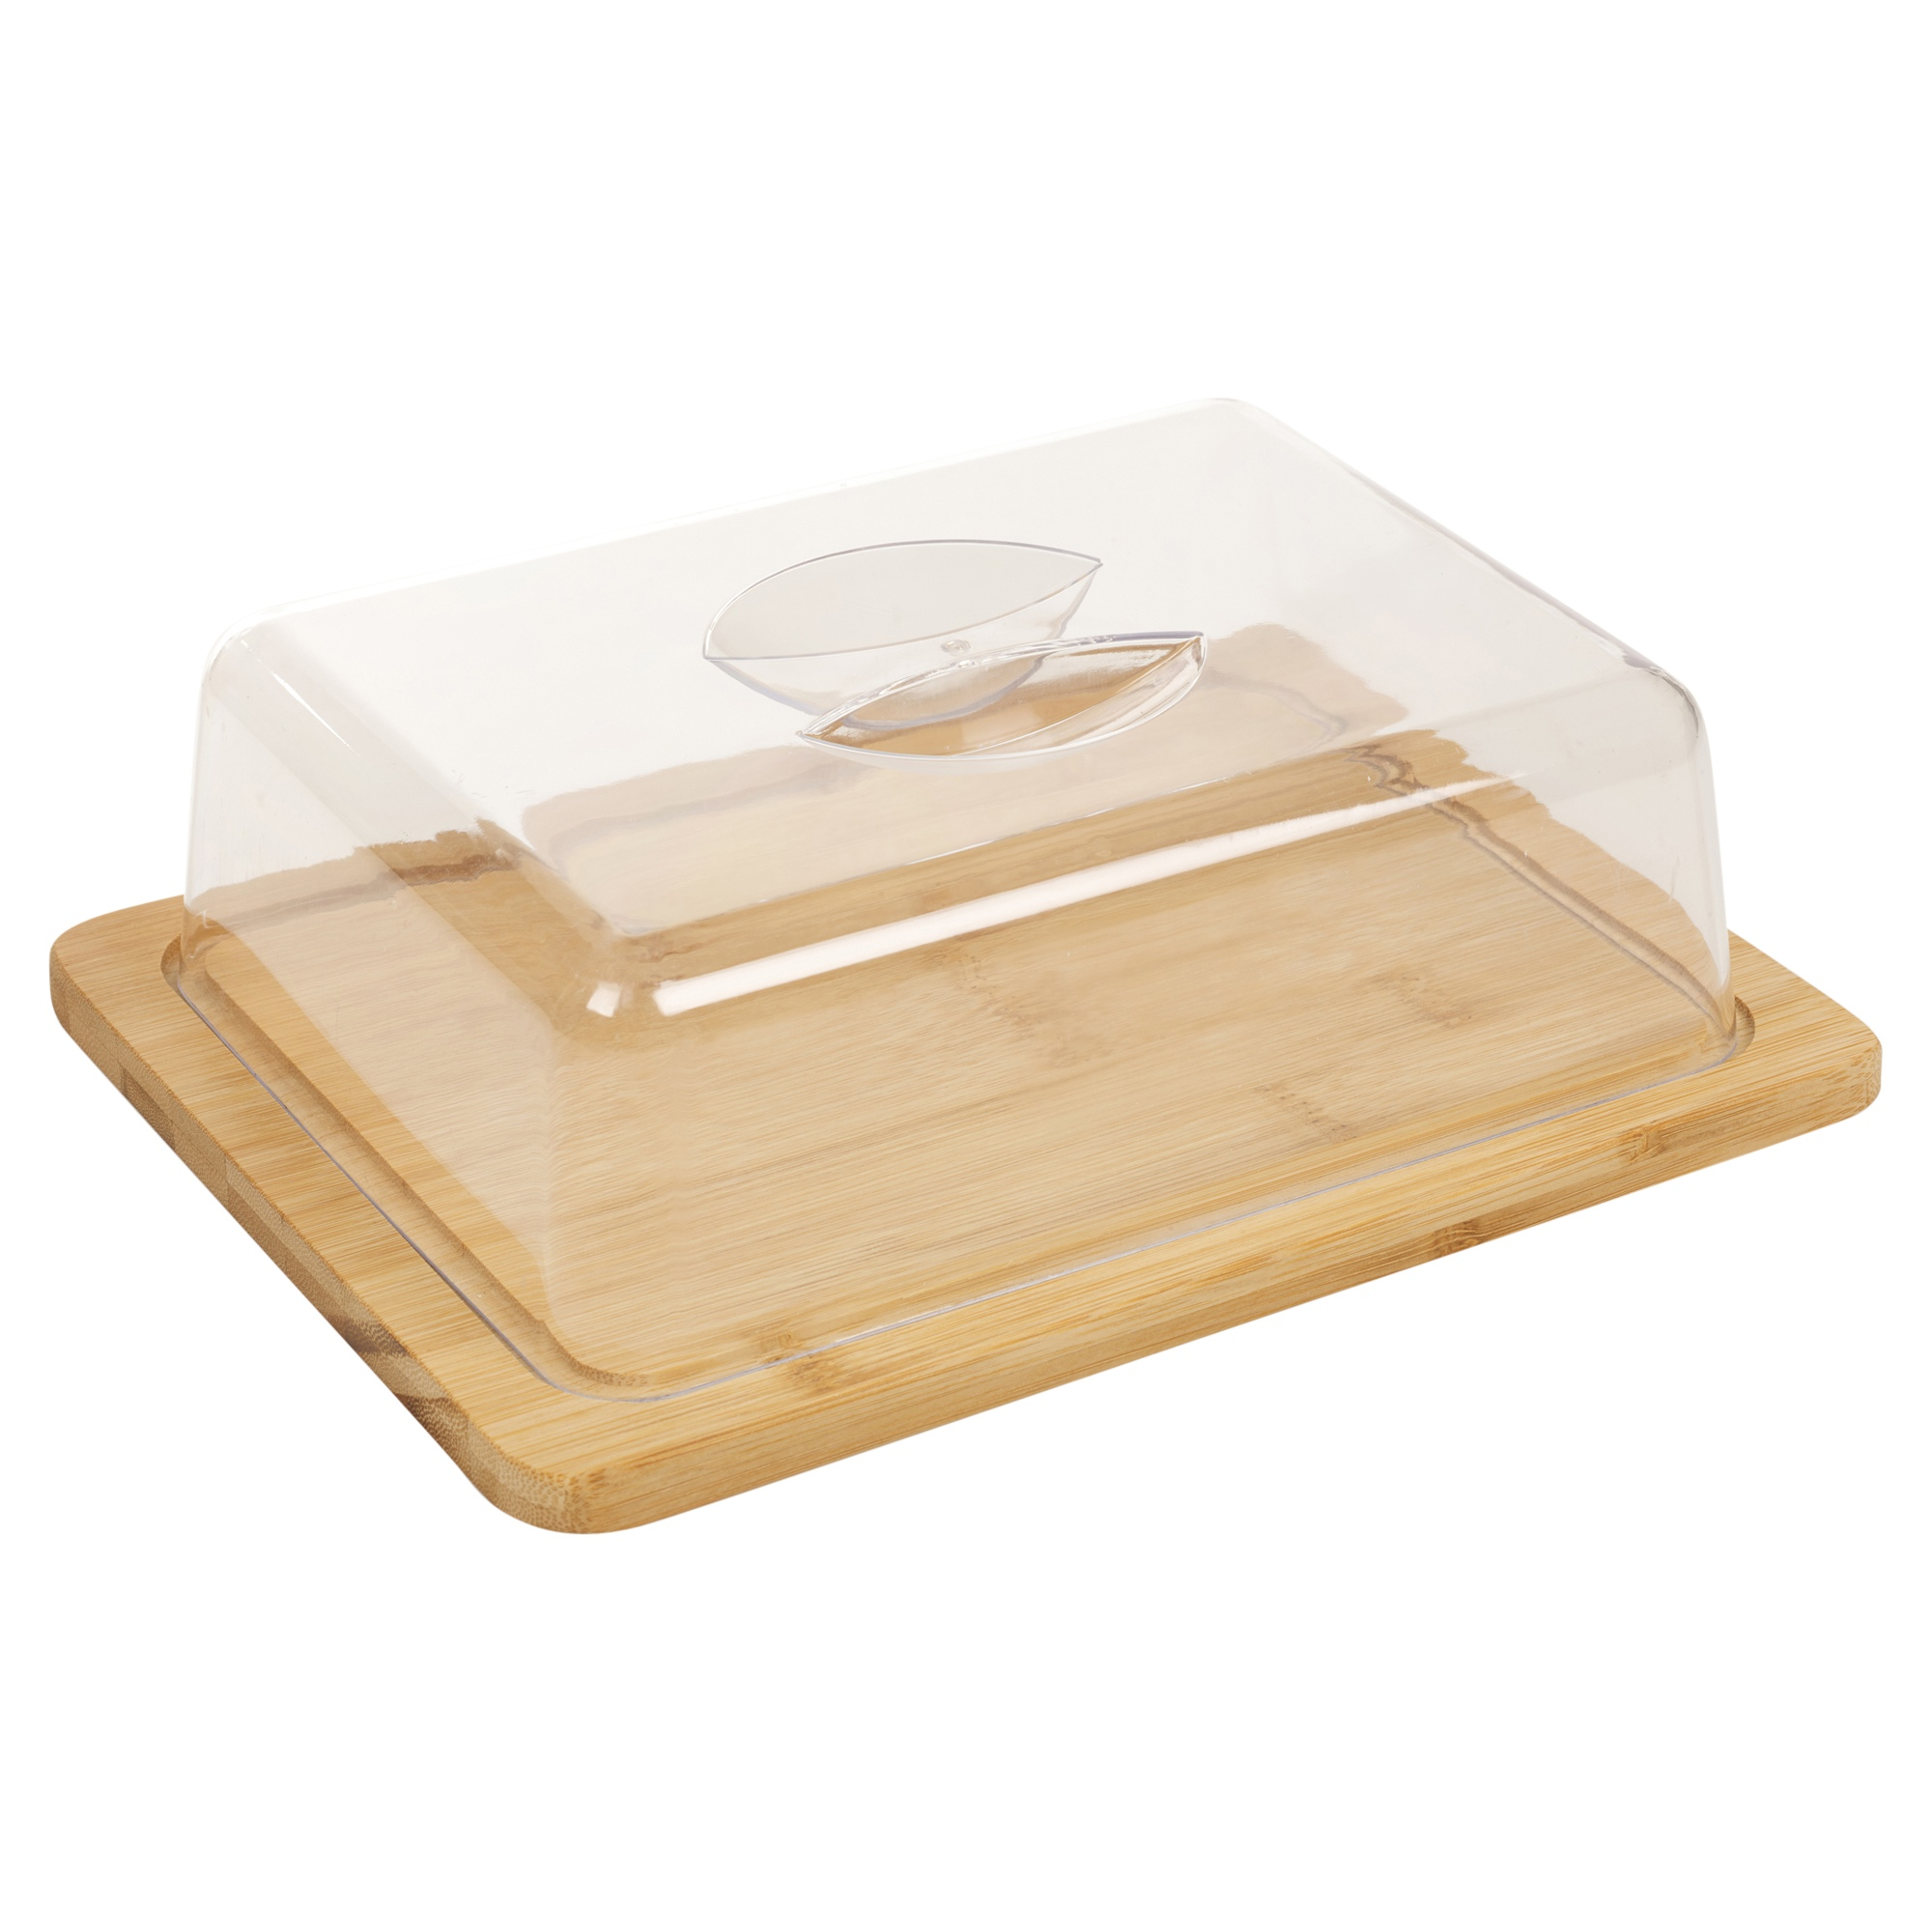 Bamboo Cheese Board & Acrylic Cover Serving Platter Tray ...